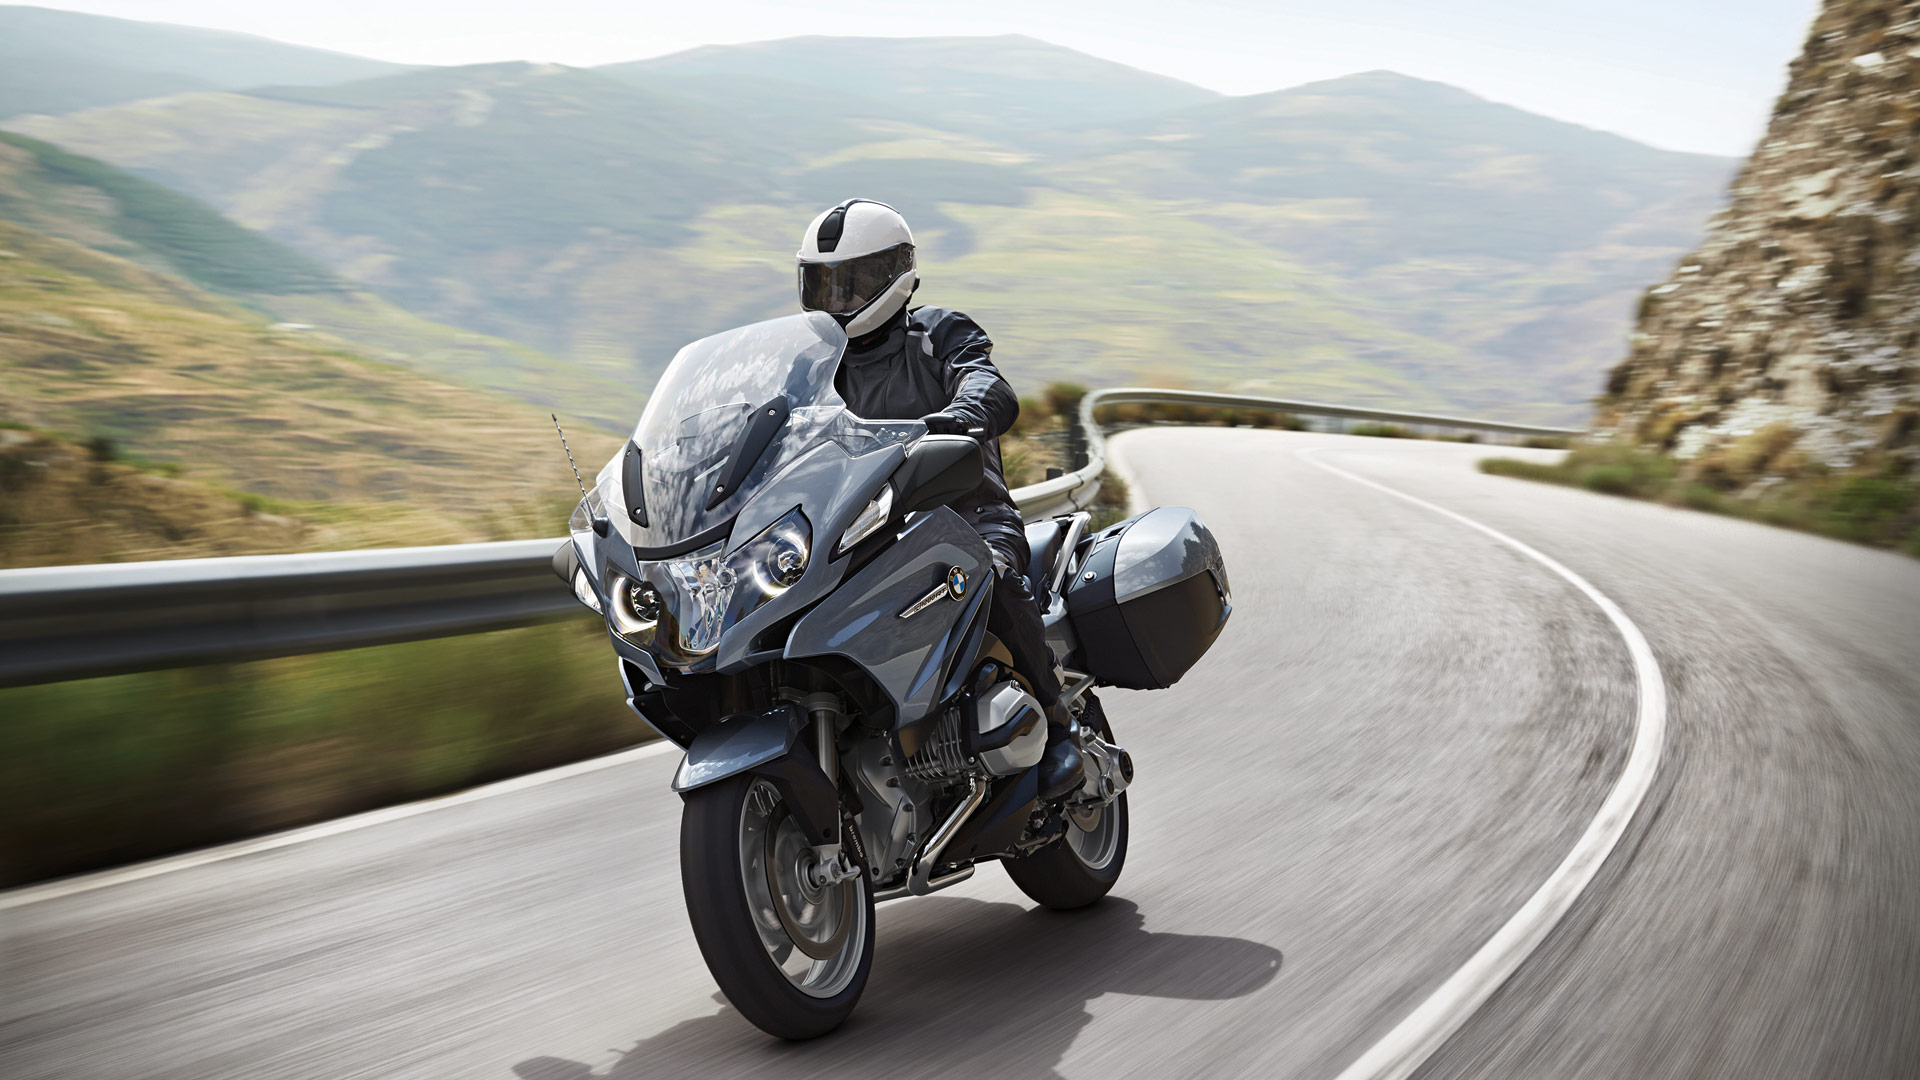 How to become a more proficient motorcyclist